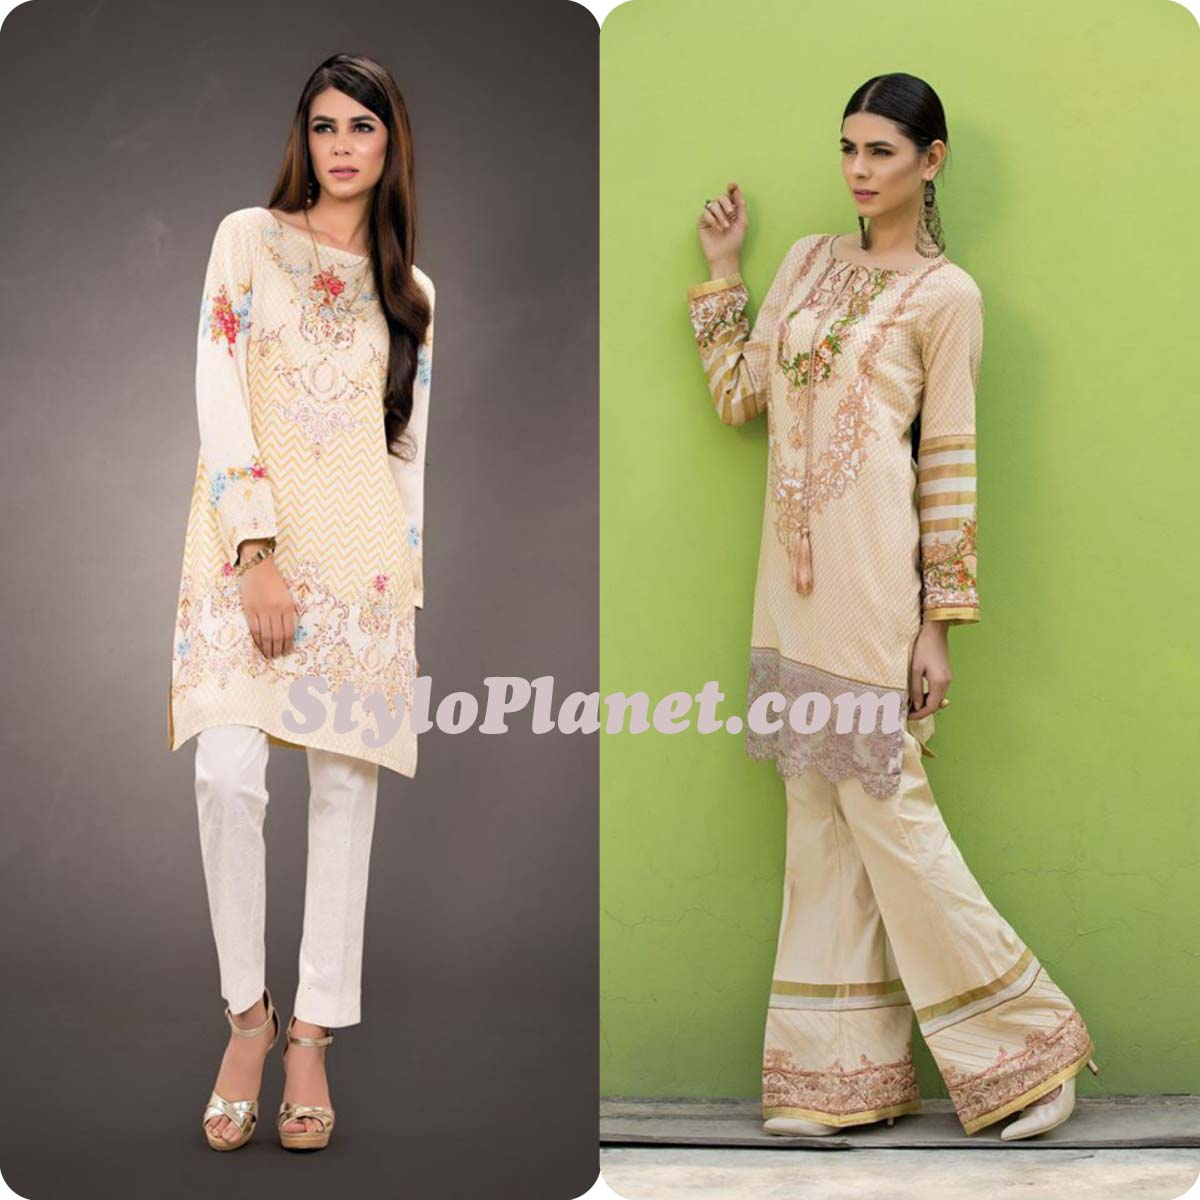 Kayseria New Eid-Ul-Adha Collection for Women 2016-2017 (10)